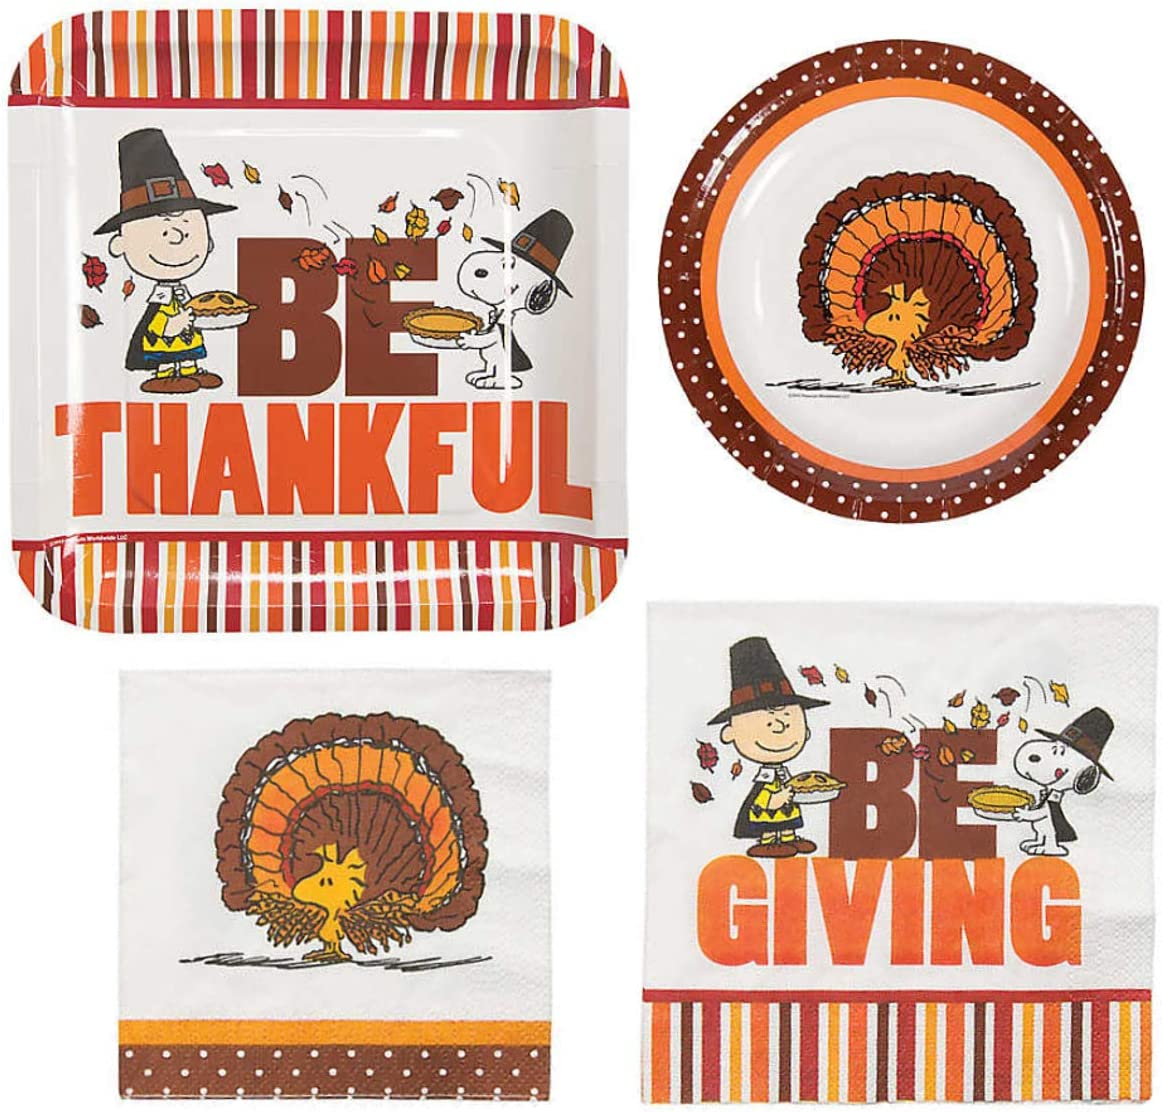 Peanuts Charlie Brown Thanksgiving Party Supplies for 16 People: Lunch or Dinner Plates, Dessert Plates and Napkins 64 Piece Set